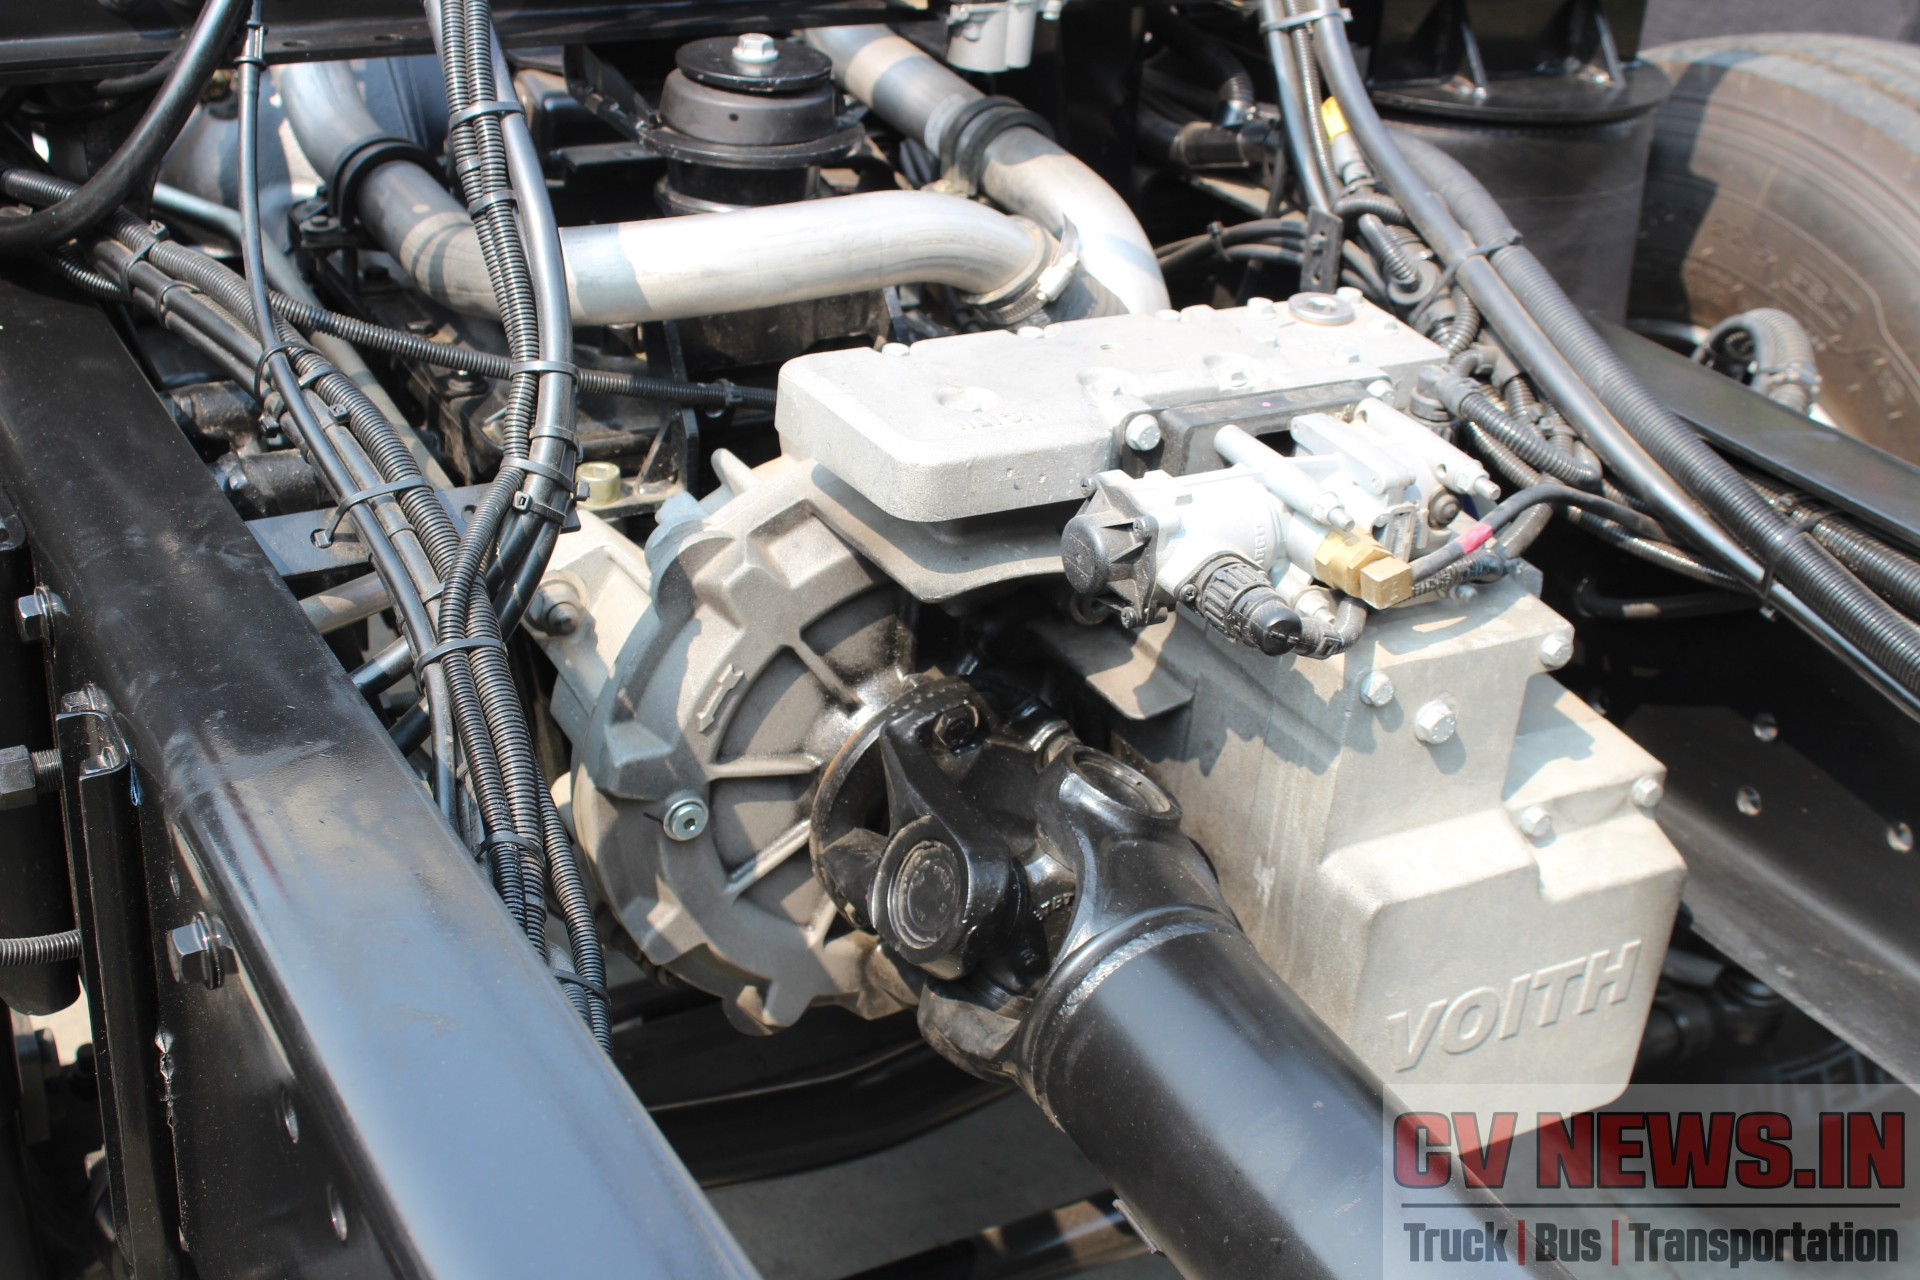 MAN CLA 22 300, 6×2, Front engine bus chassis – Close look